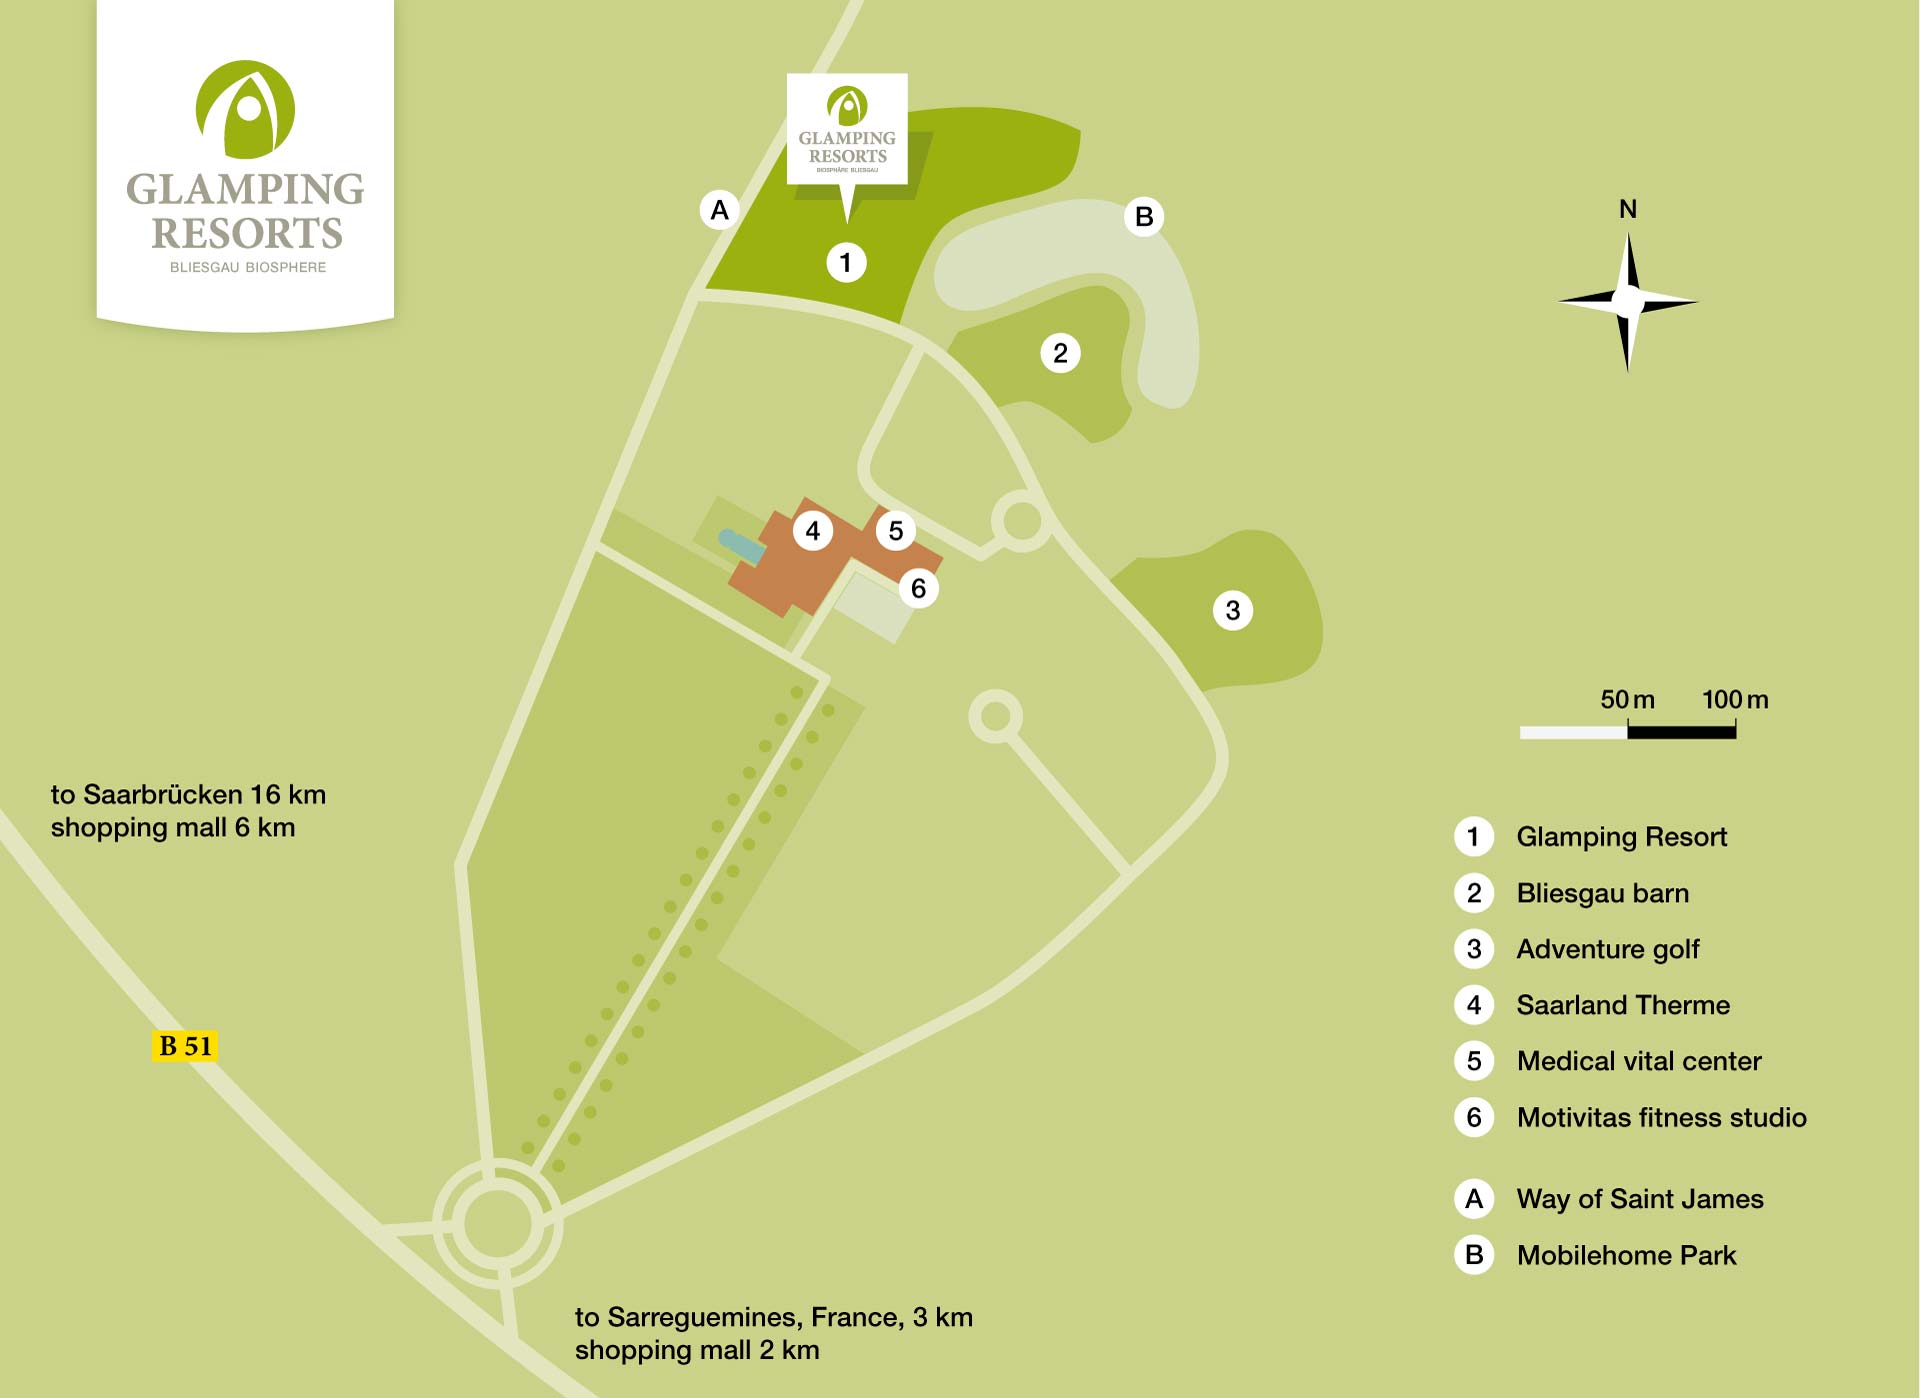 Map with distances, Glamping Resort Bliesgau biosphere